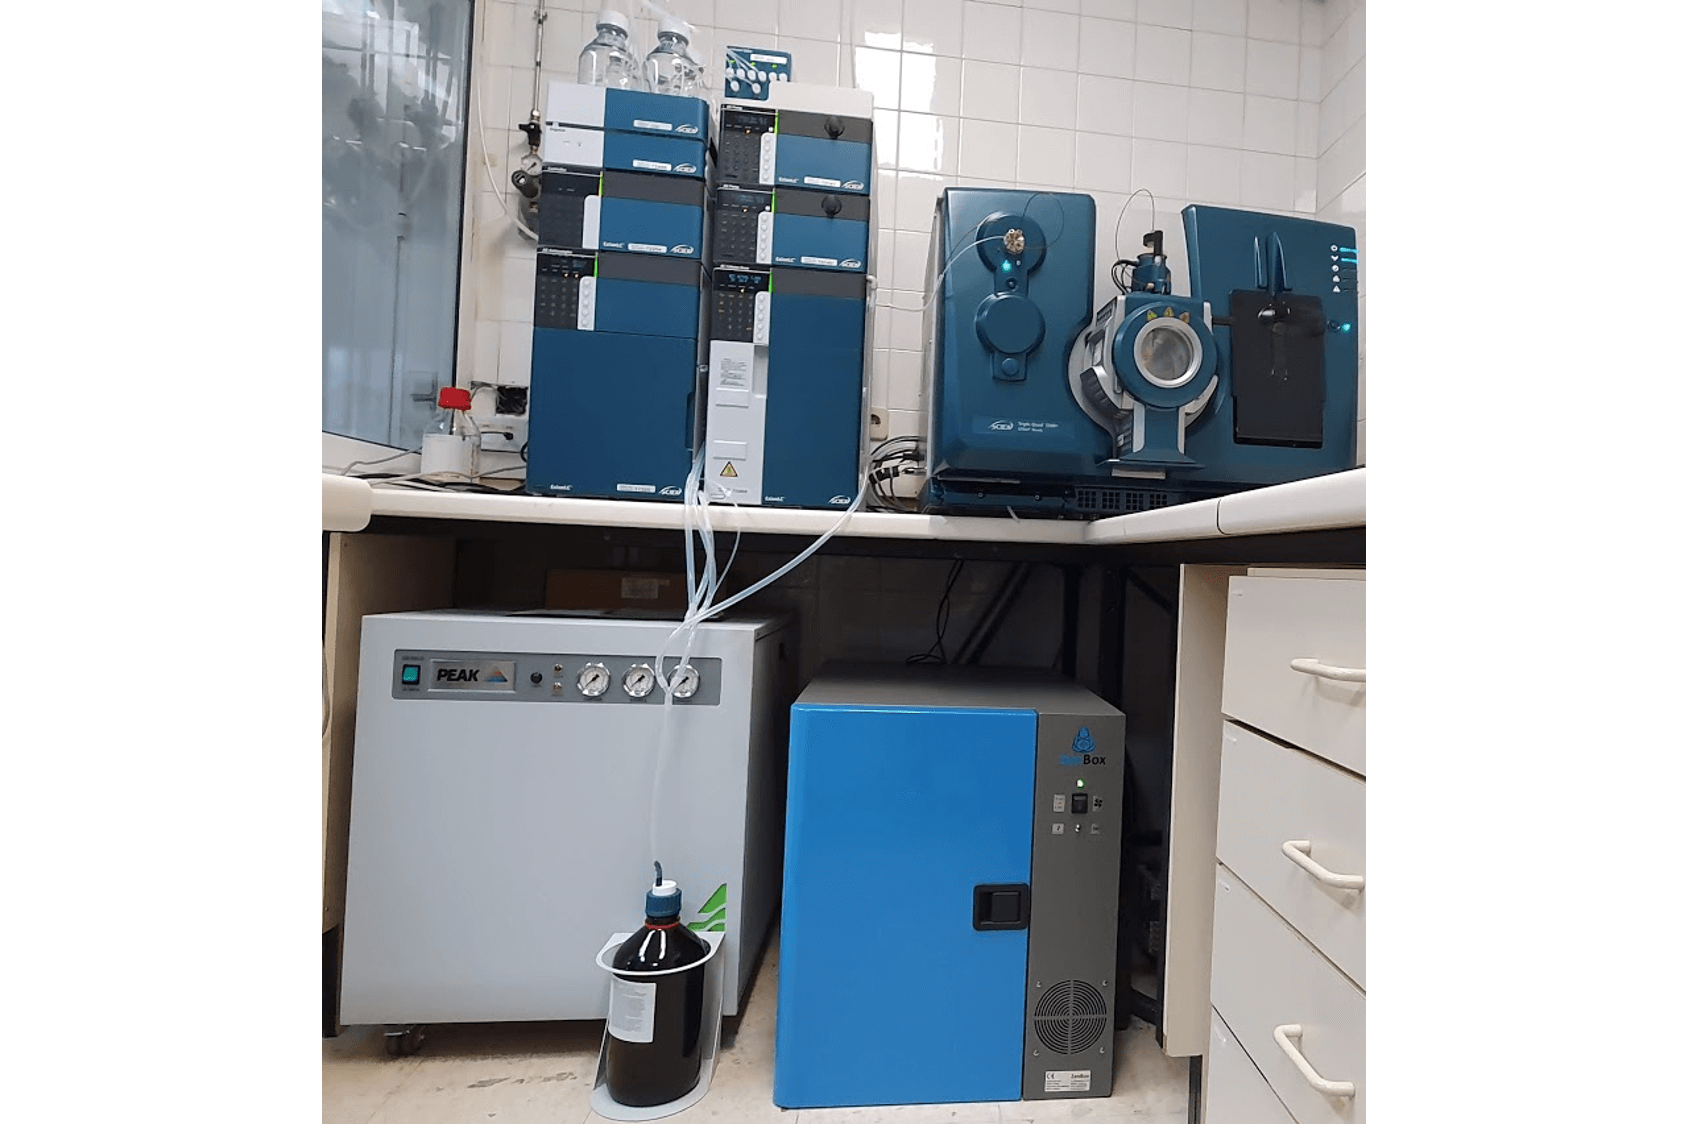 noise reduction enclosure for one agilent ms40+ vane rotary pump